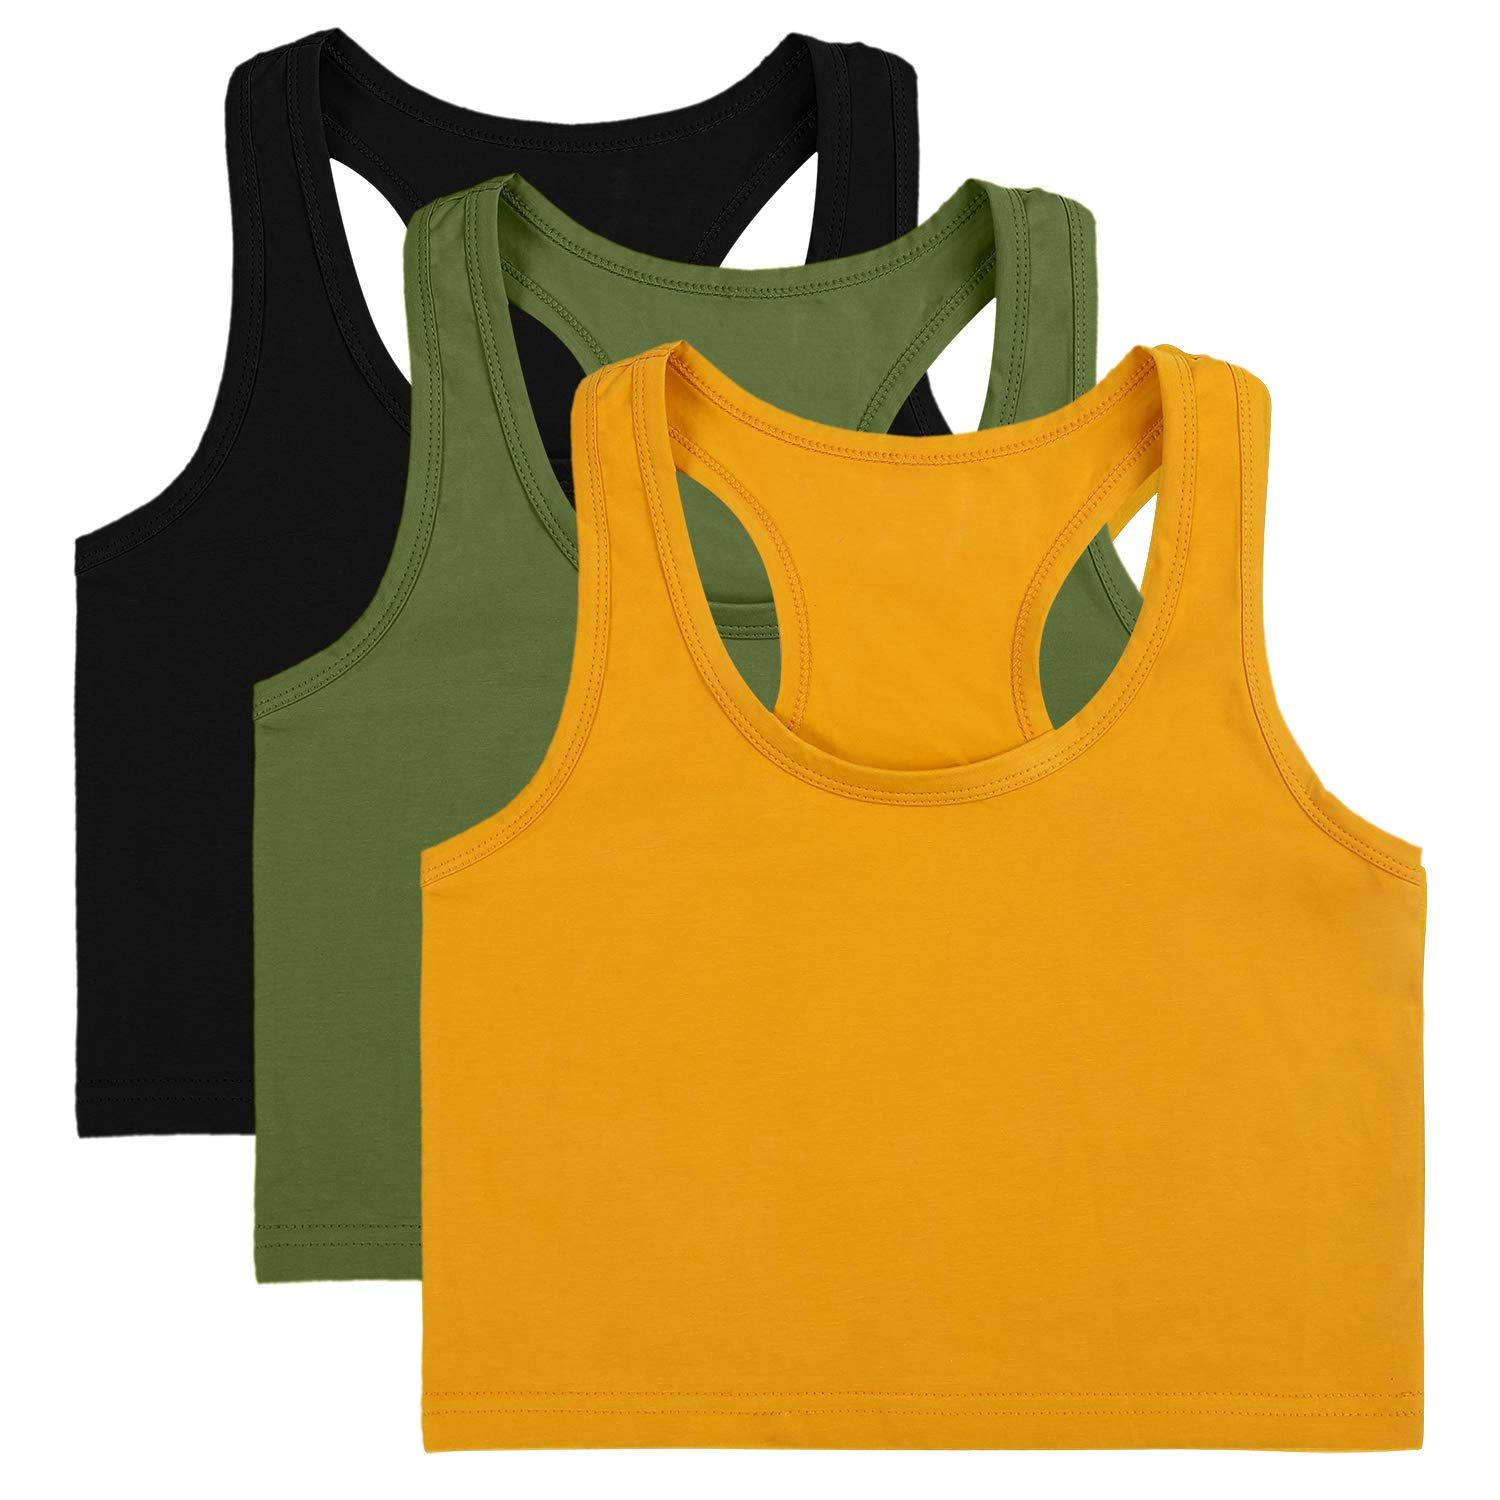 3 Style Cotton Basic Sleeveless Racerback Crop Tank Top Womens Sports Crop Top